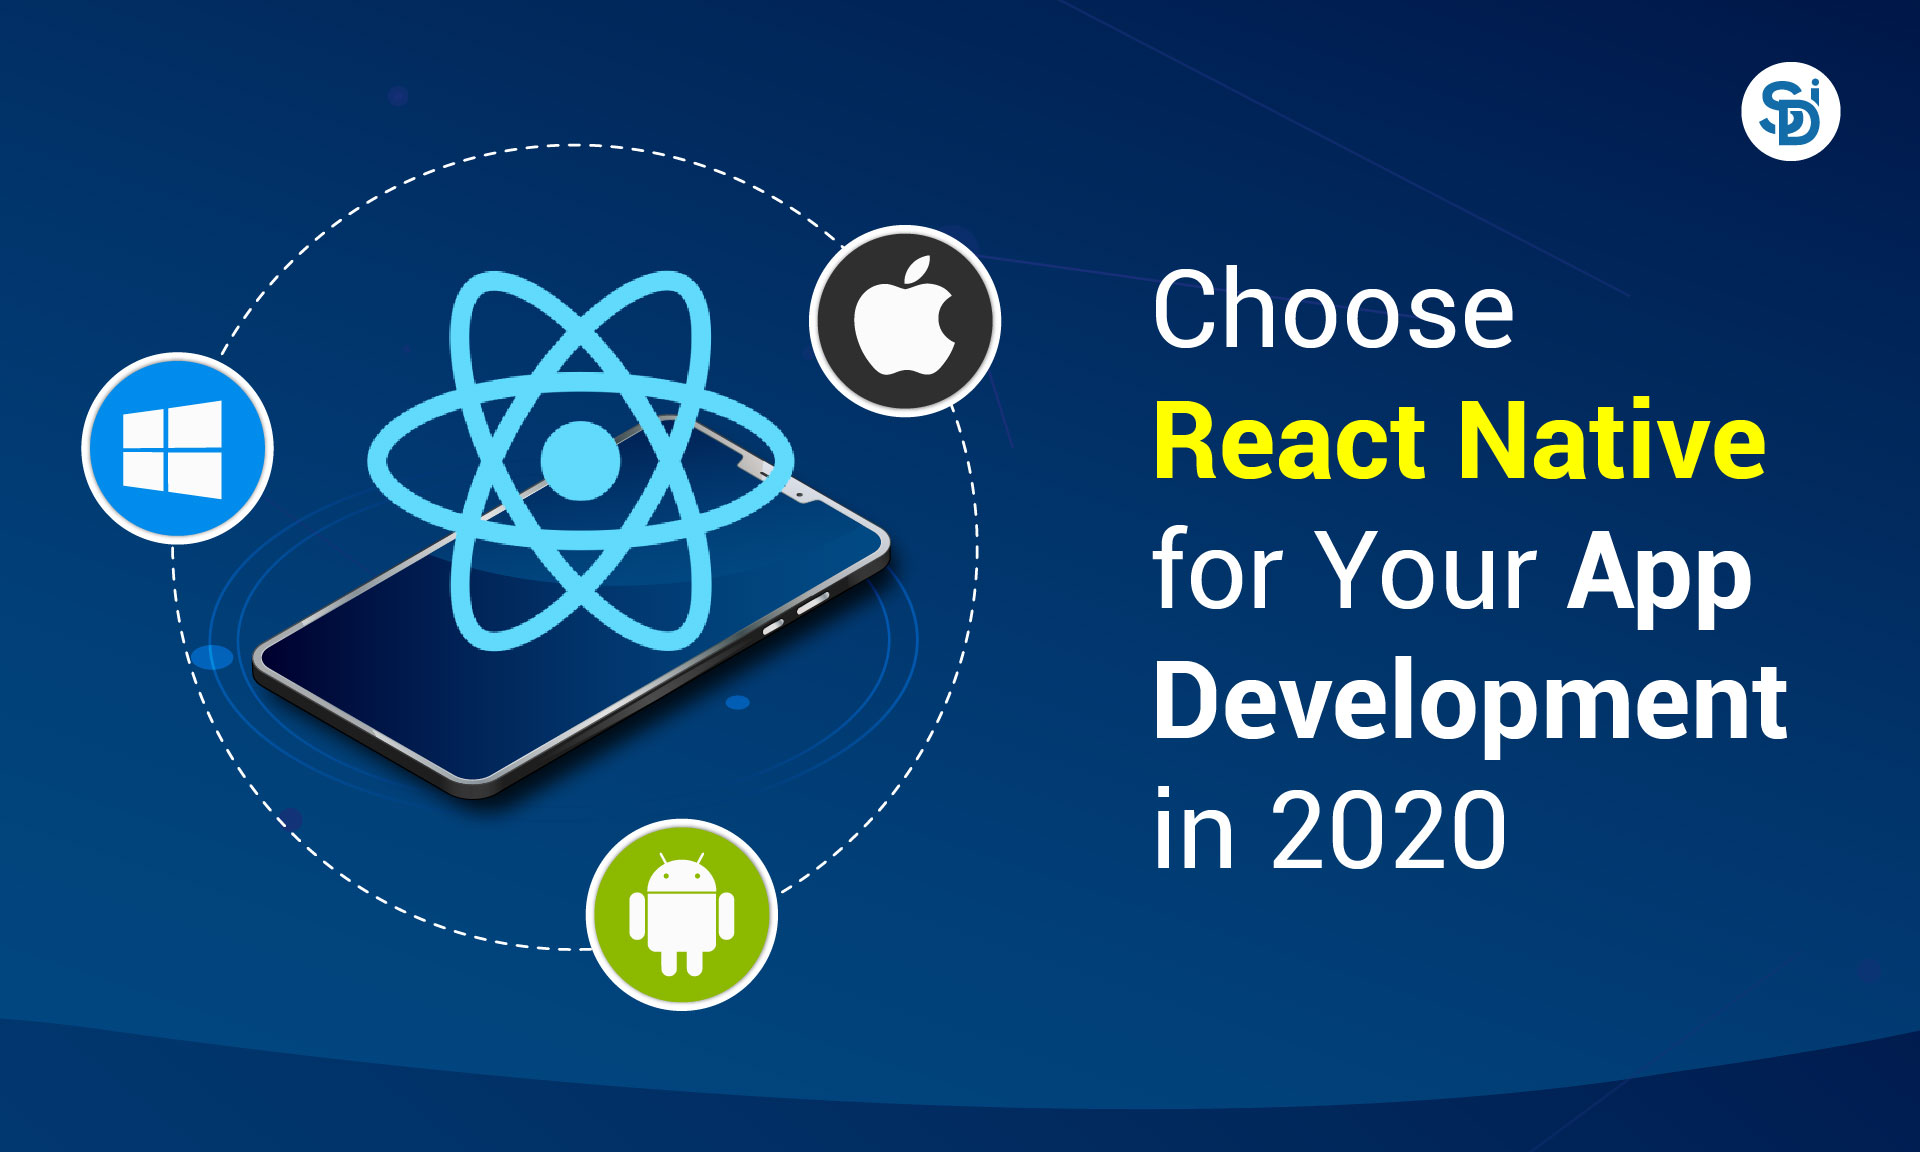 Reasons to Choose React Native for Your App Development